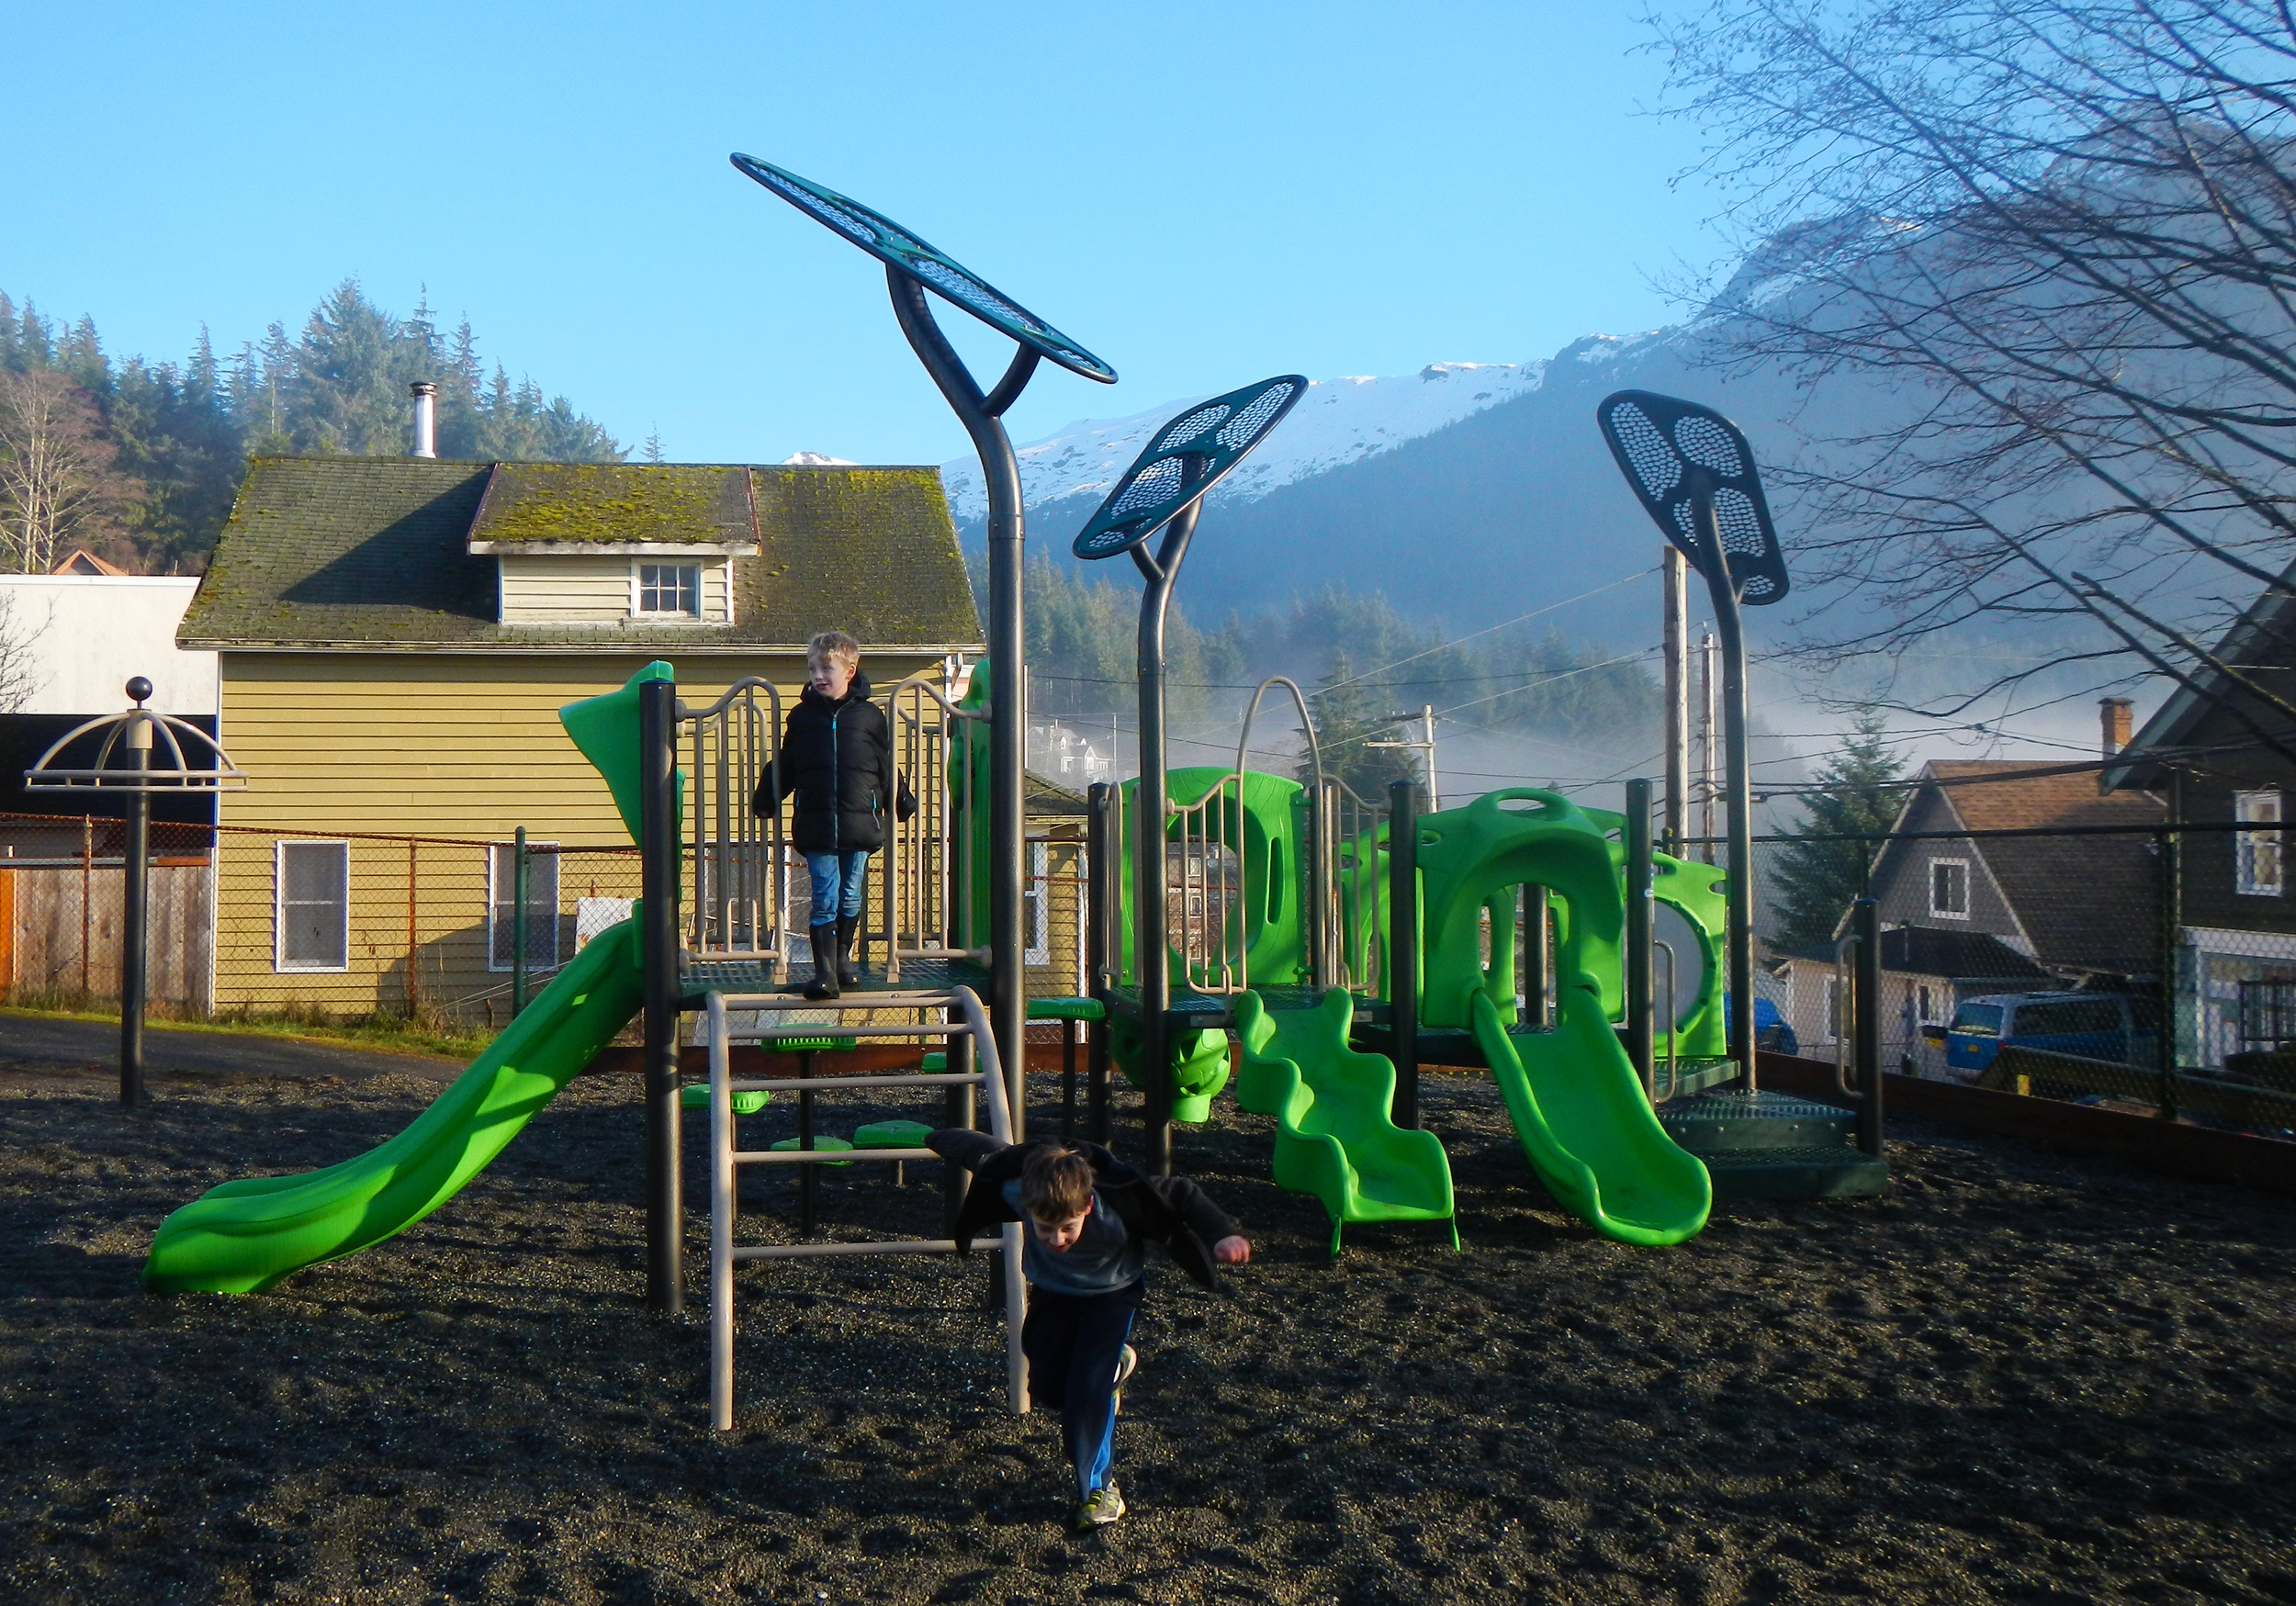 Grant Street Playground, just up the hill from the Cruise Ship dock in Ketchikan.